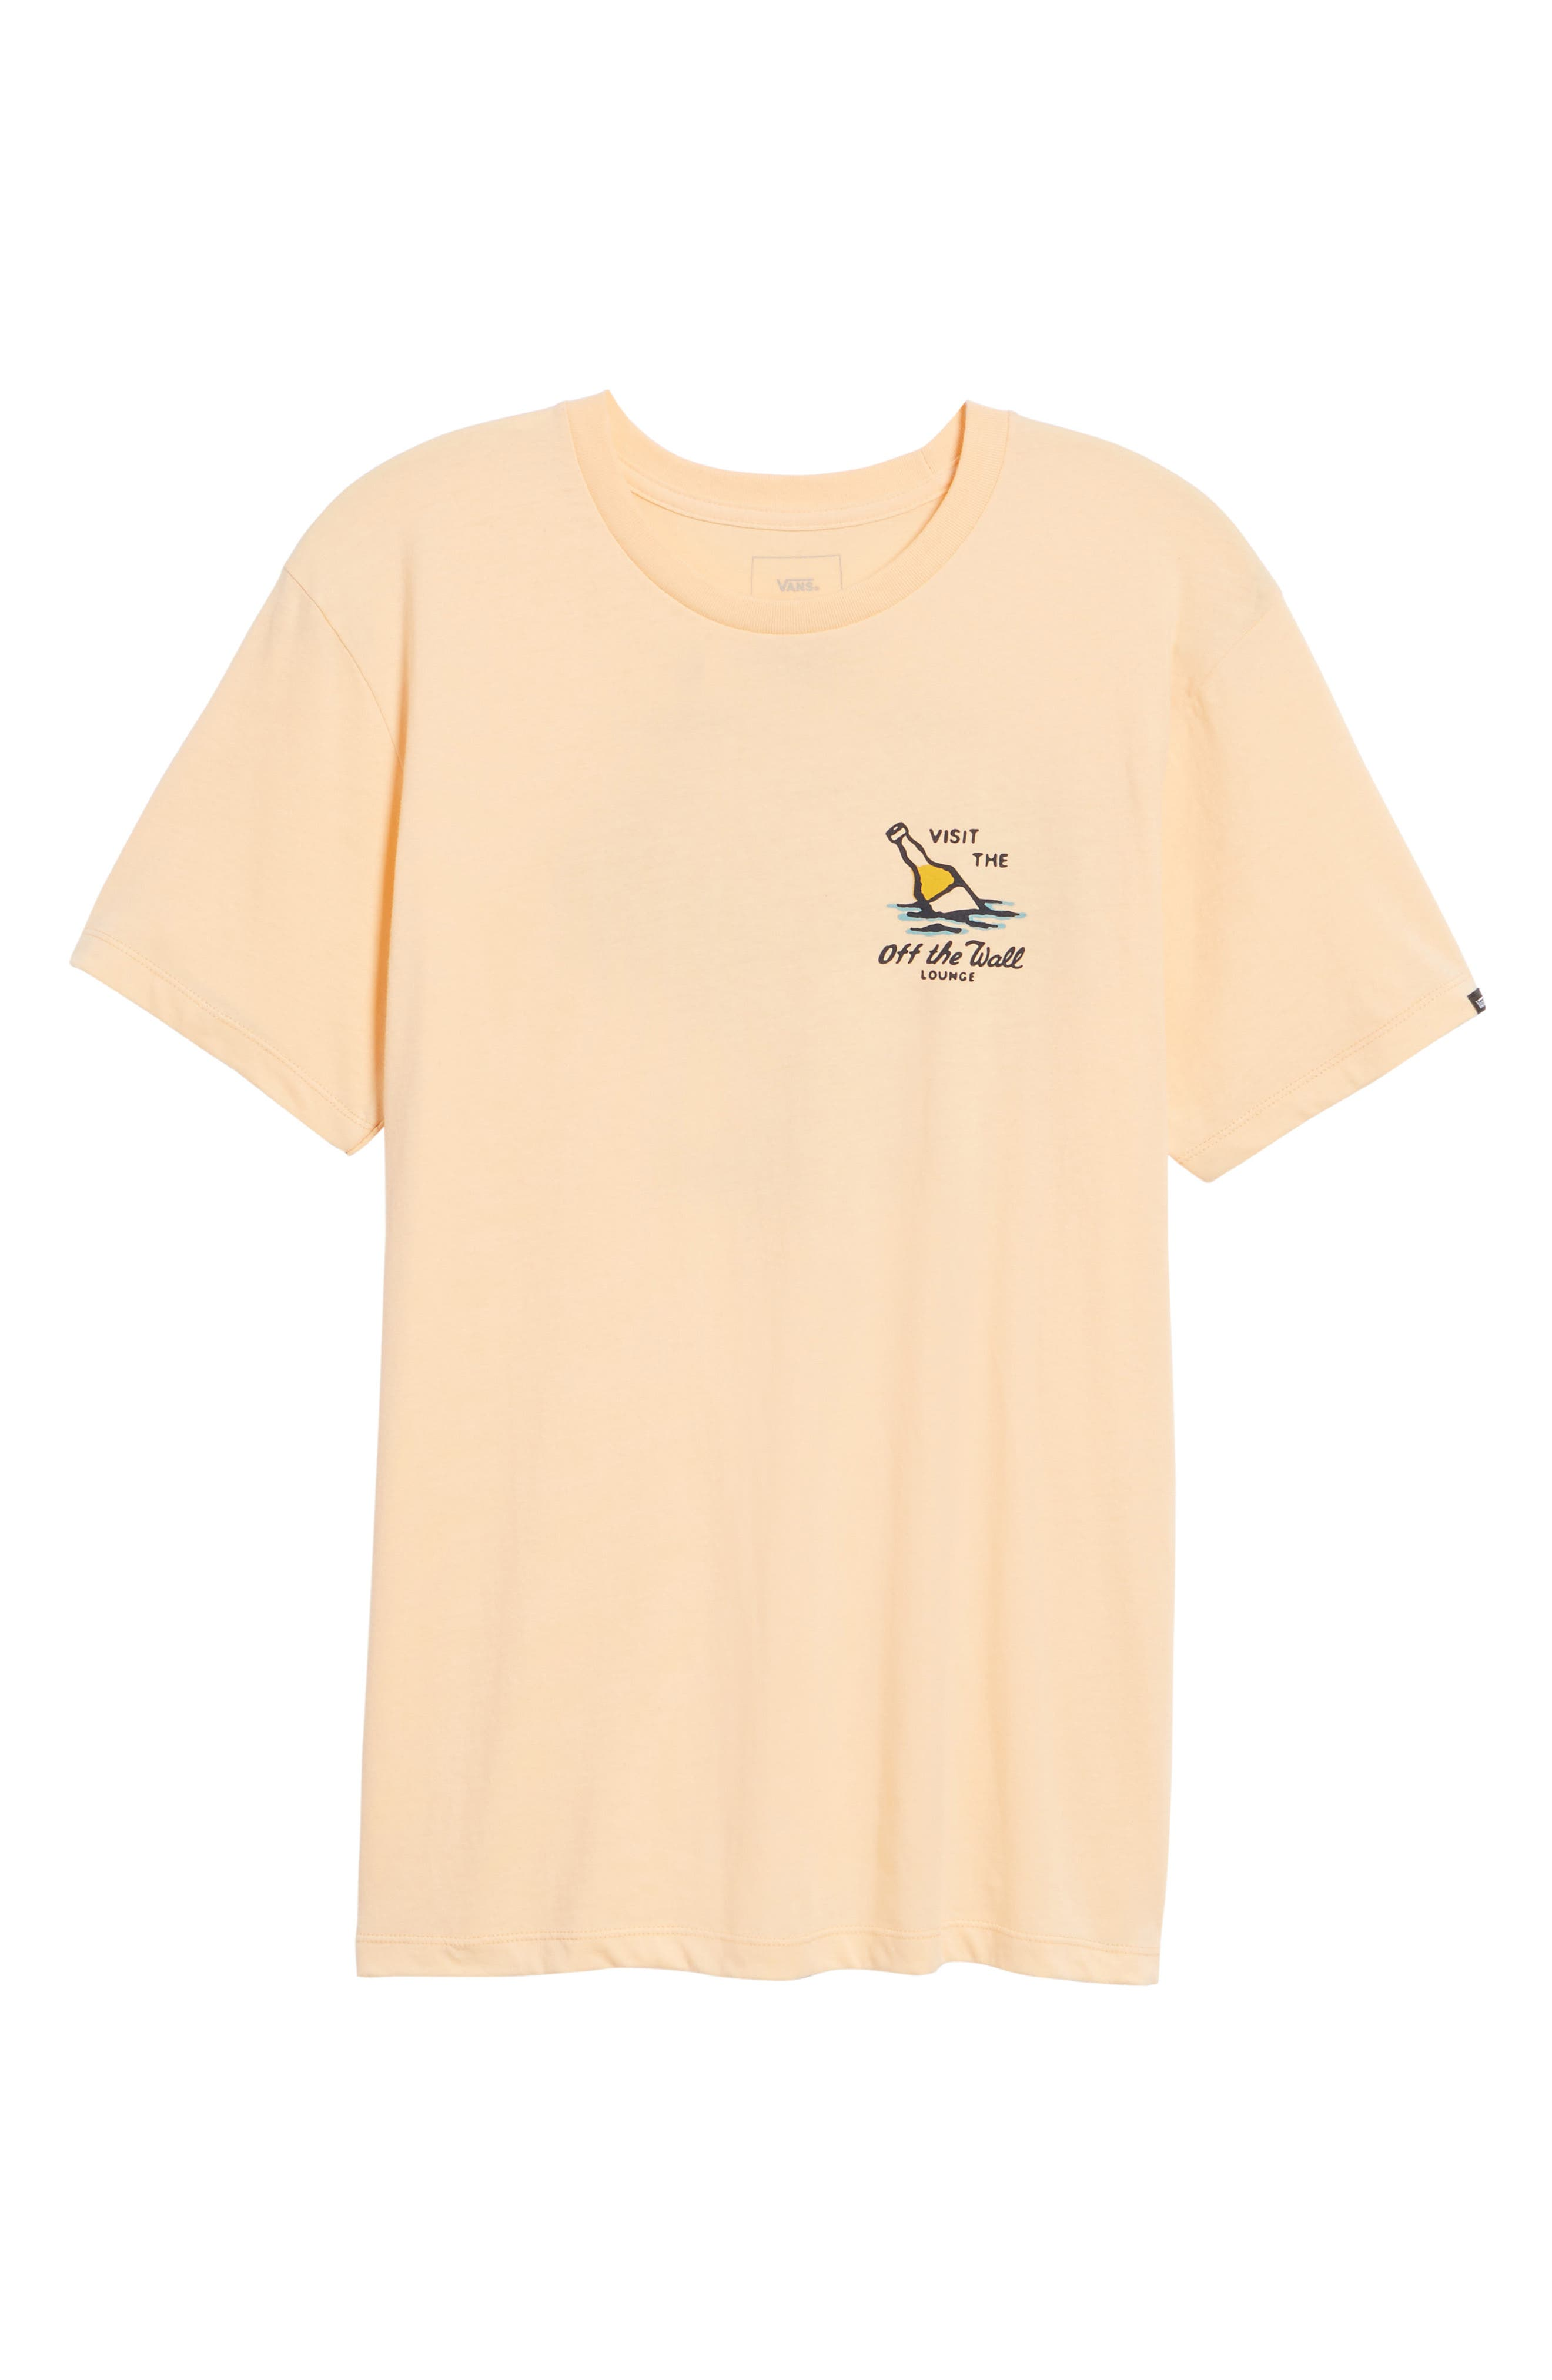 Off the Wall Lounge T-Shirt,                             Alternate thumbnail 6, color,                             810